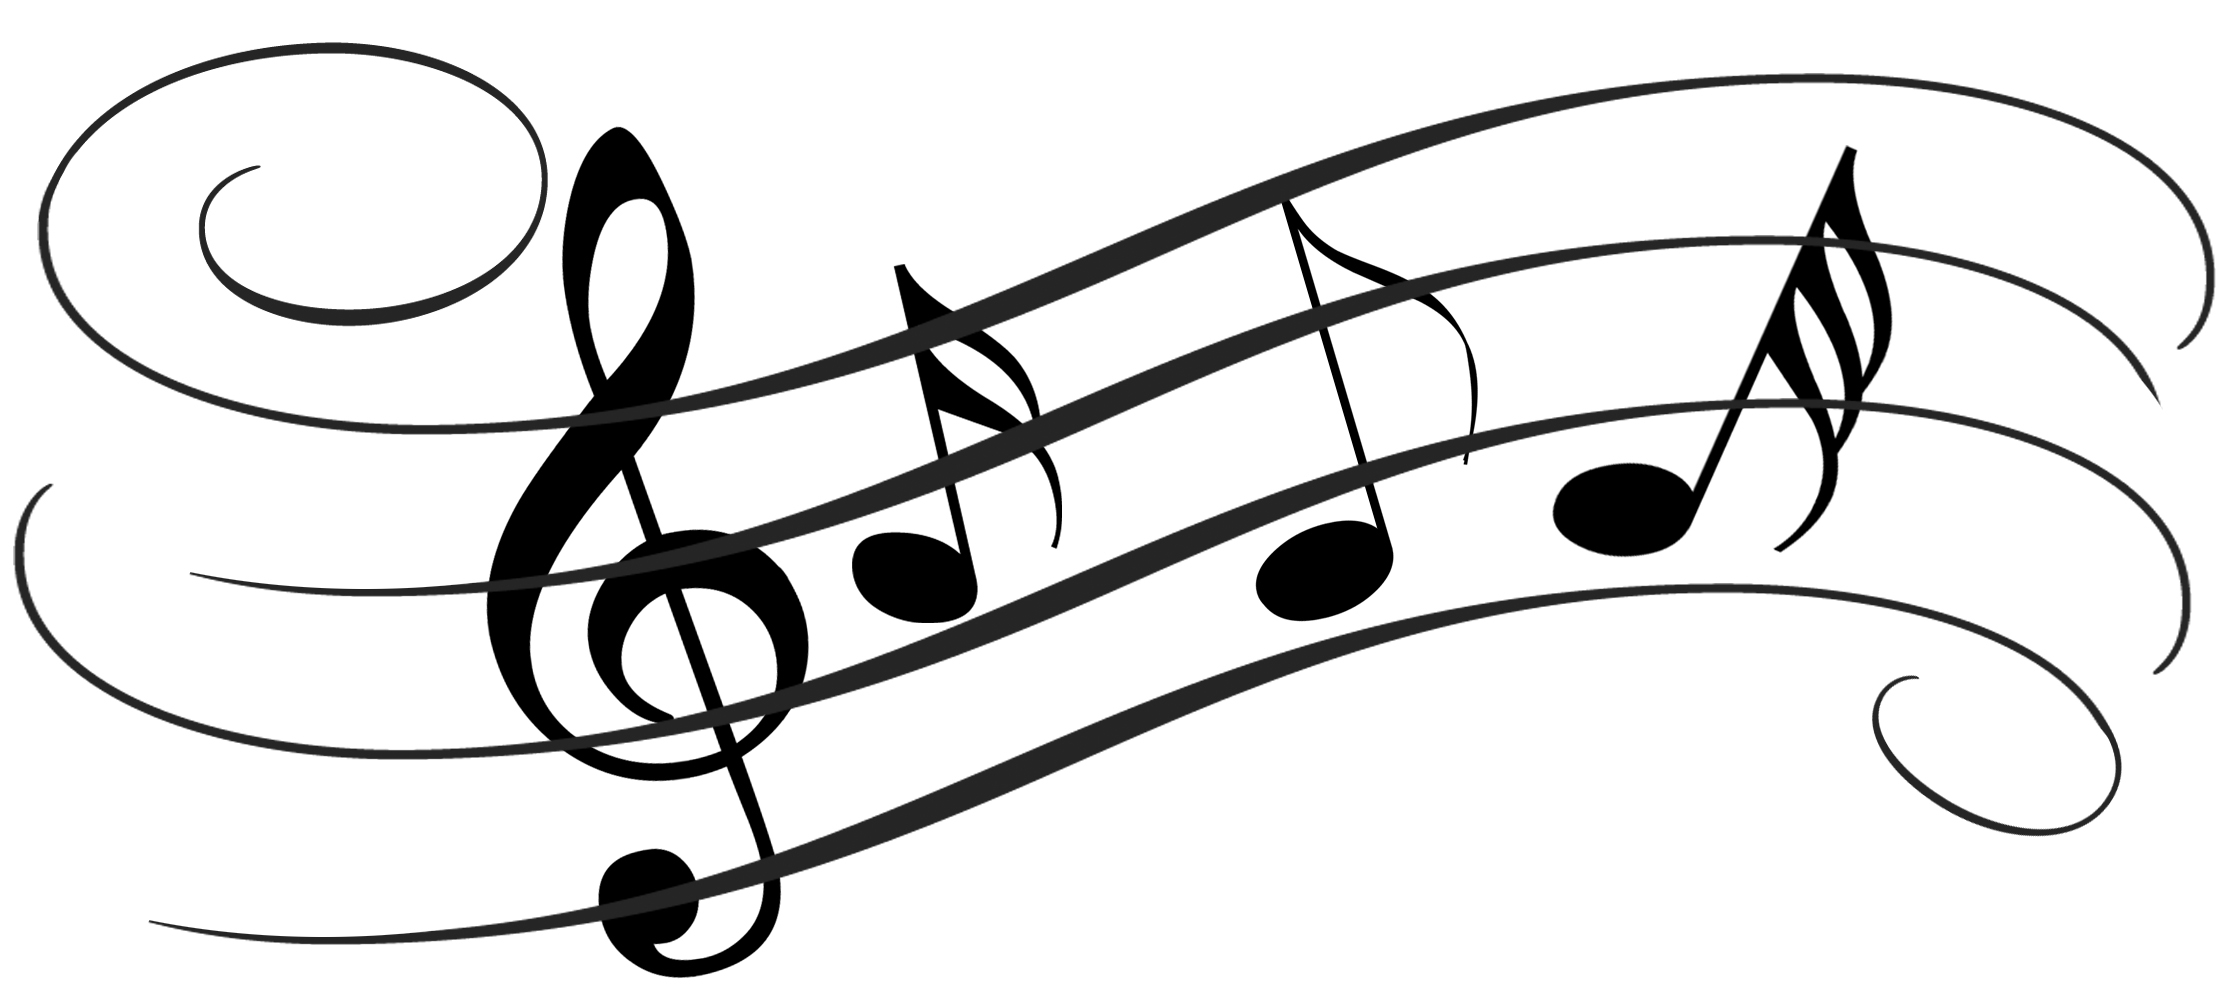 Music notes drawings clipart best